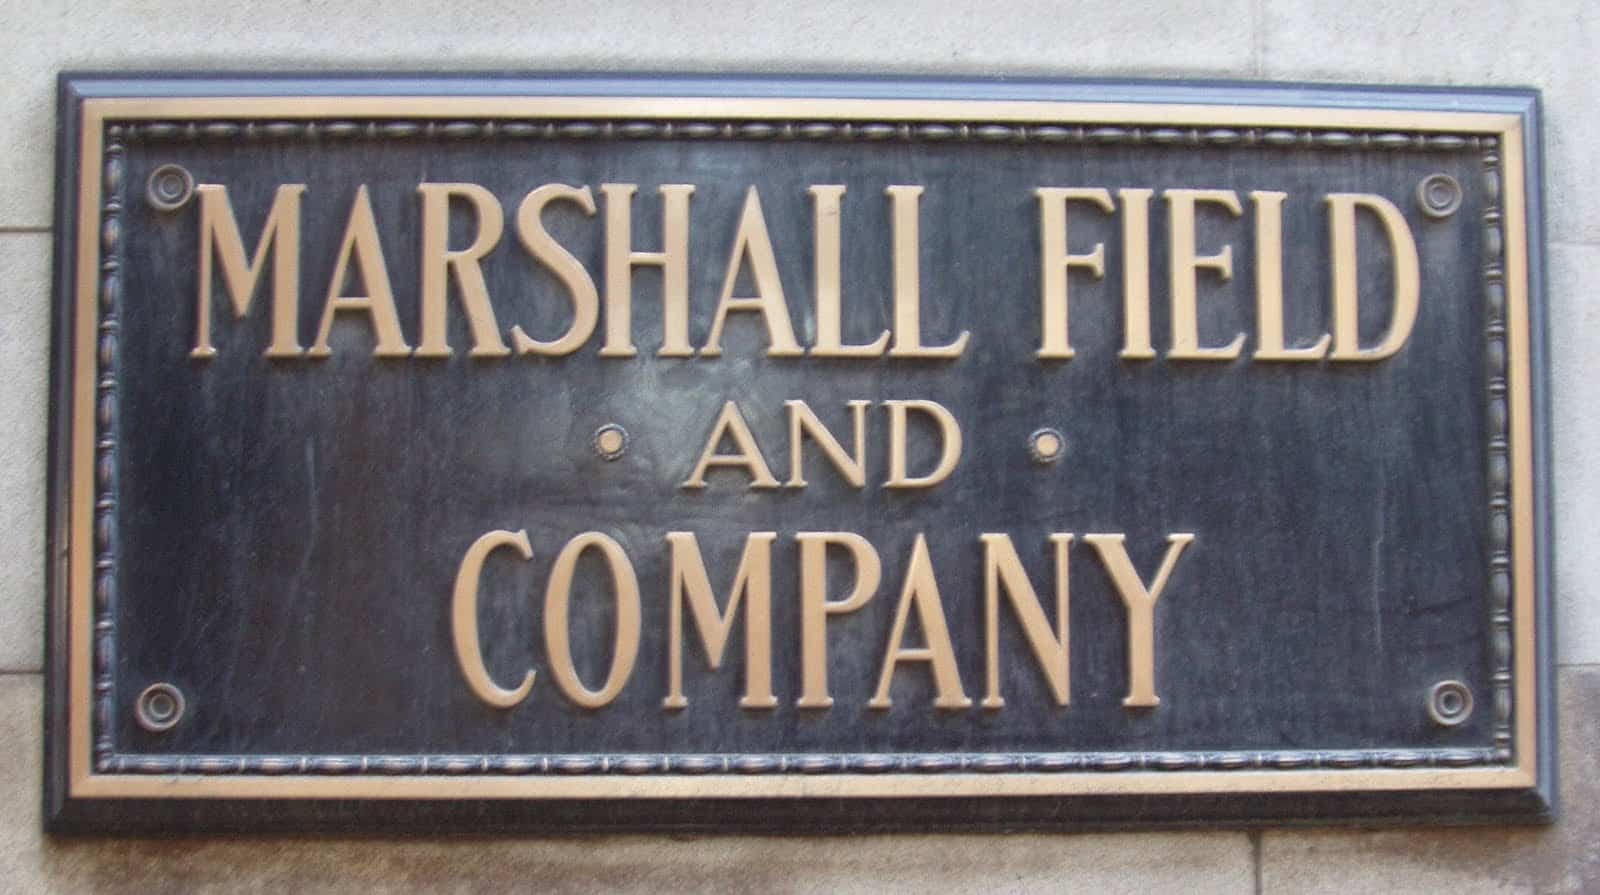 Marshall Field's Brass Plaque